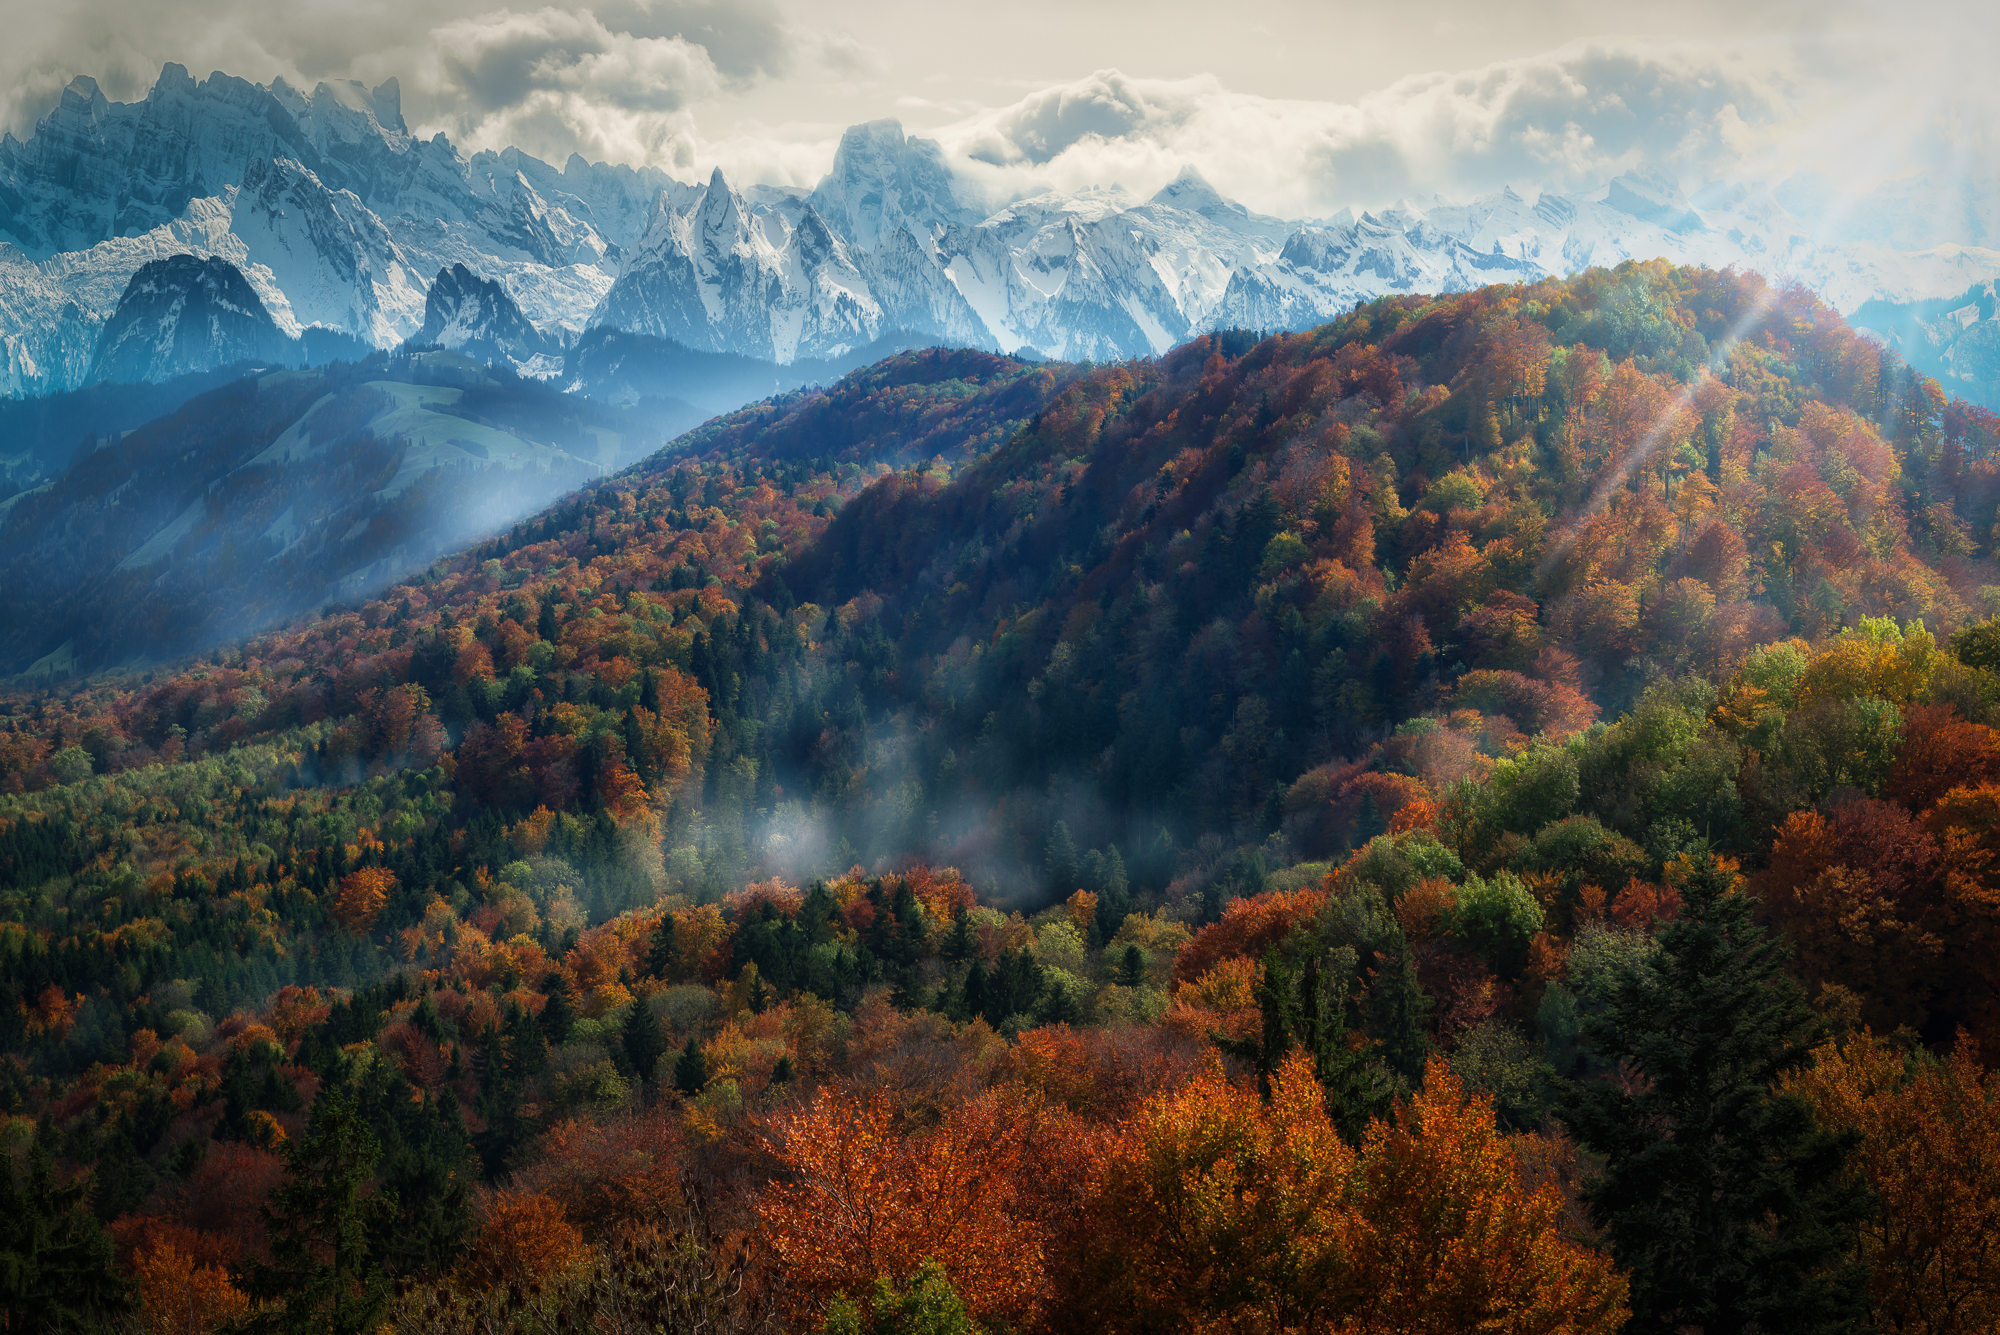 Autumn Fall Wallpaper 1600x900 Autumn In The Alps Full Hd Wallpaper And Background Image